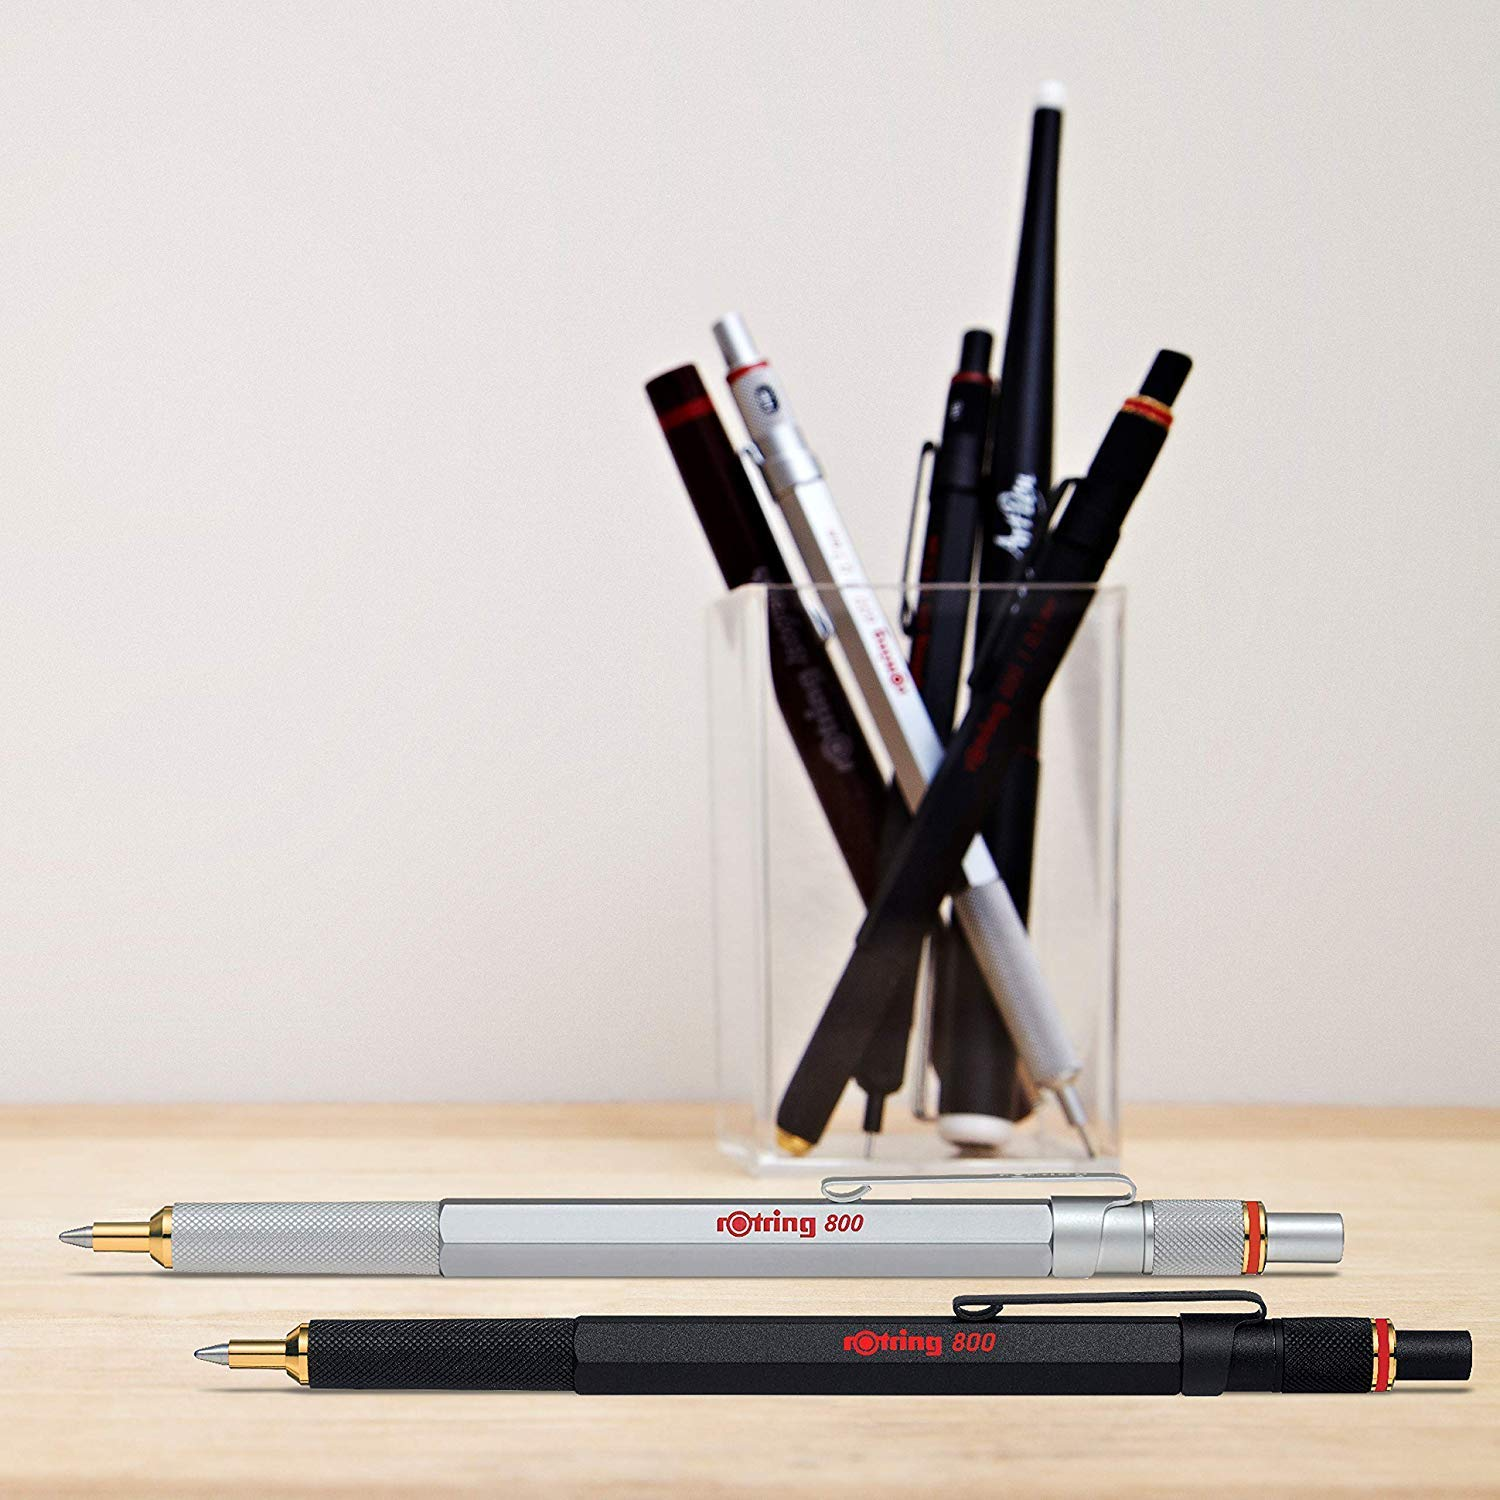 rOtring 800 Retractable Ballpoint Pen, Medium Point, Silver by Rotring (Image #5)